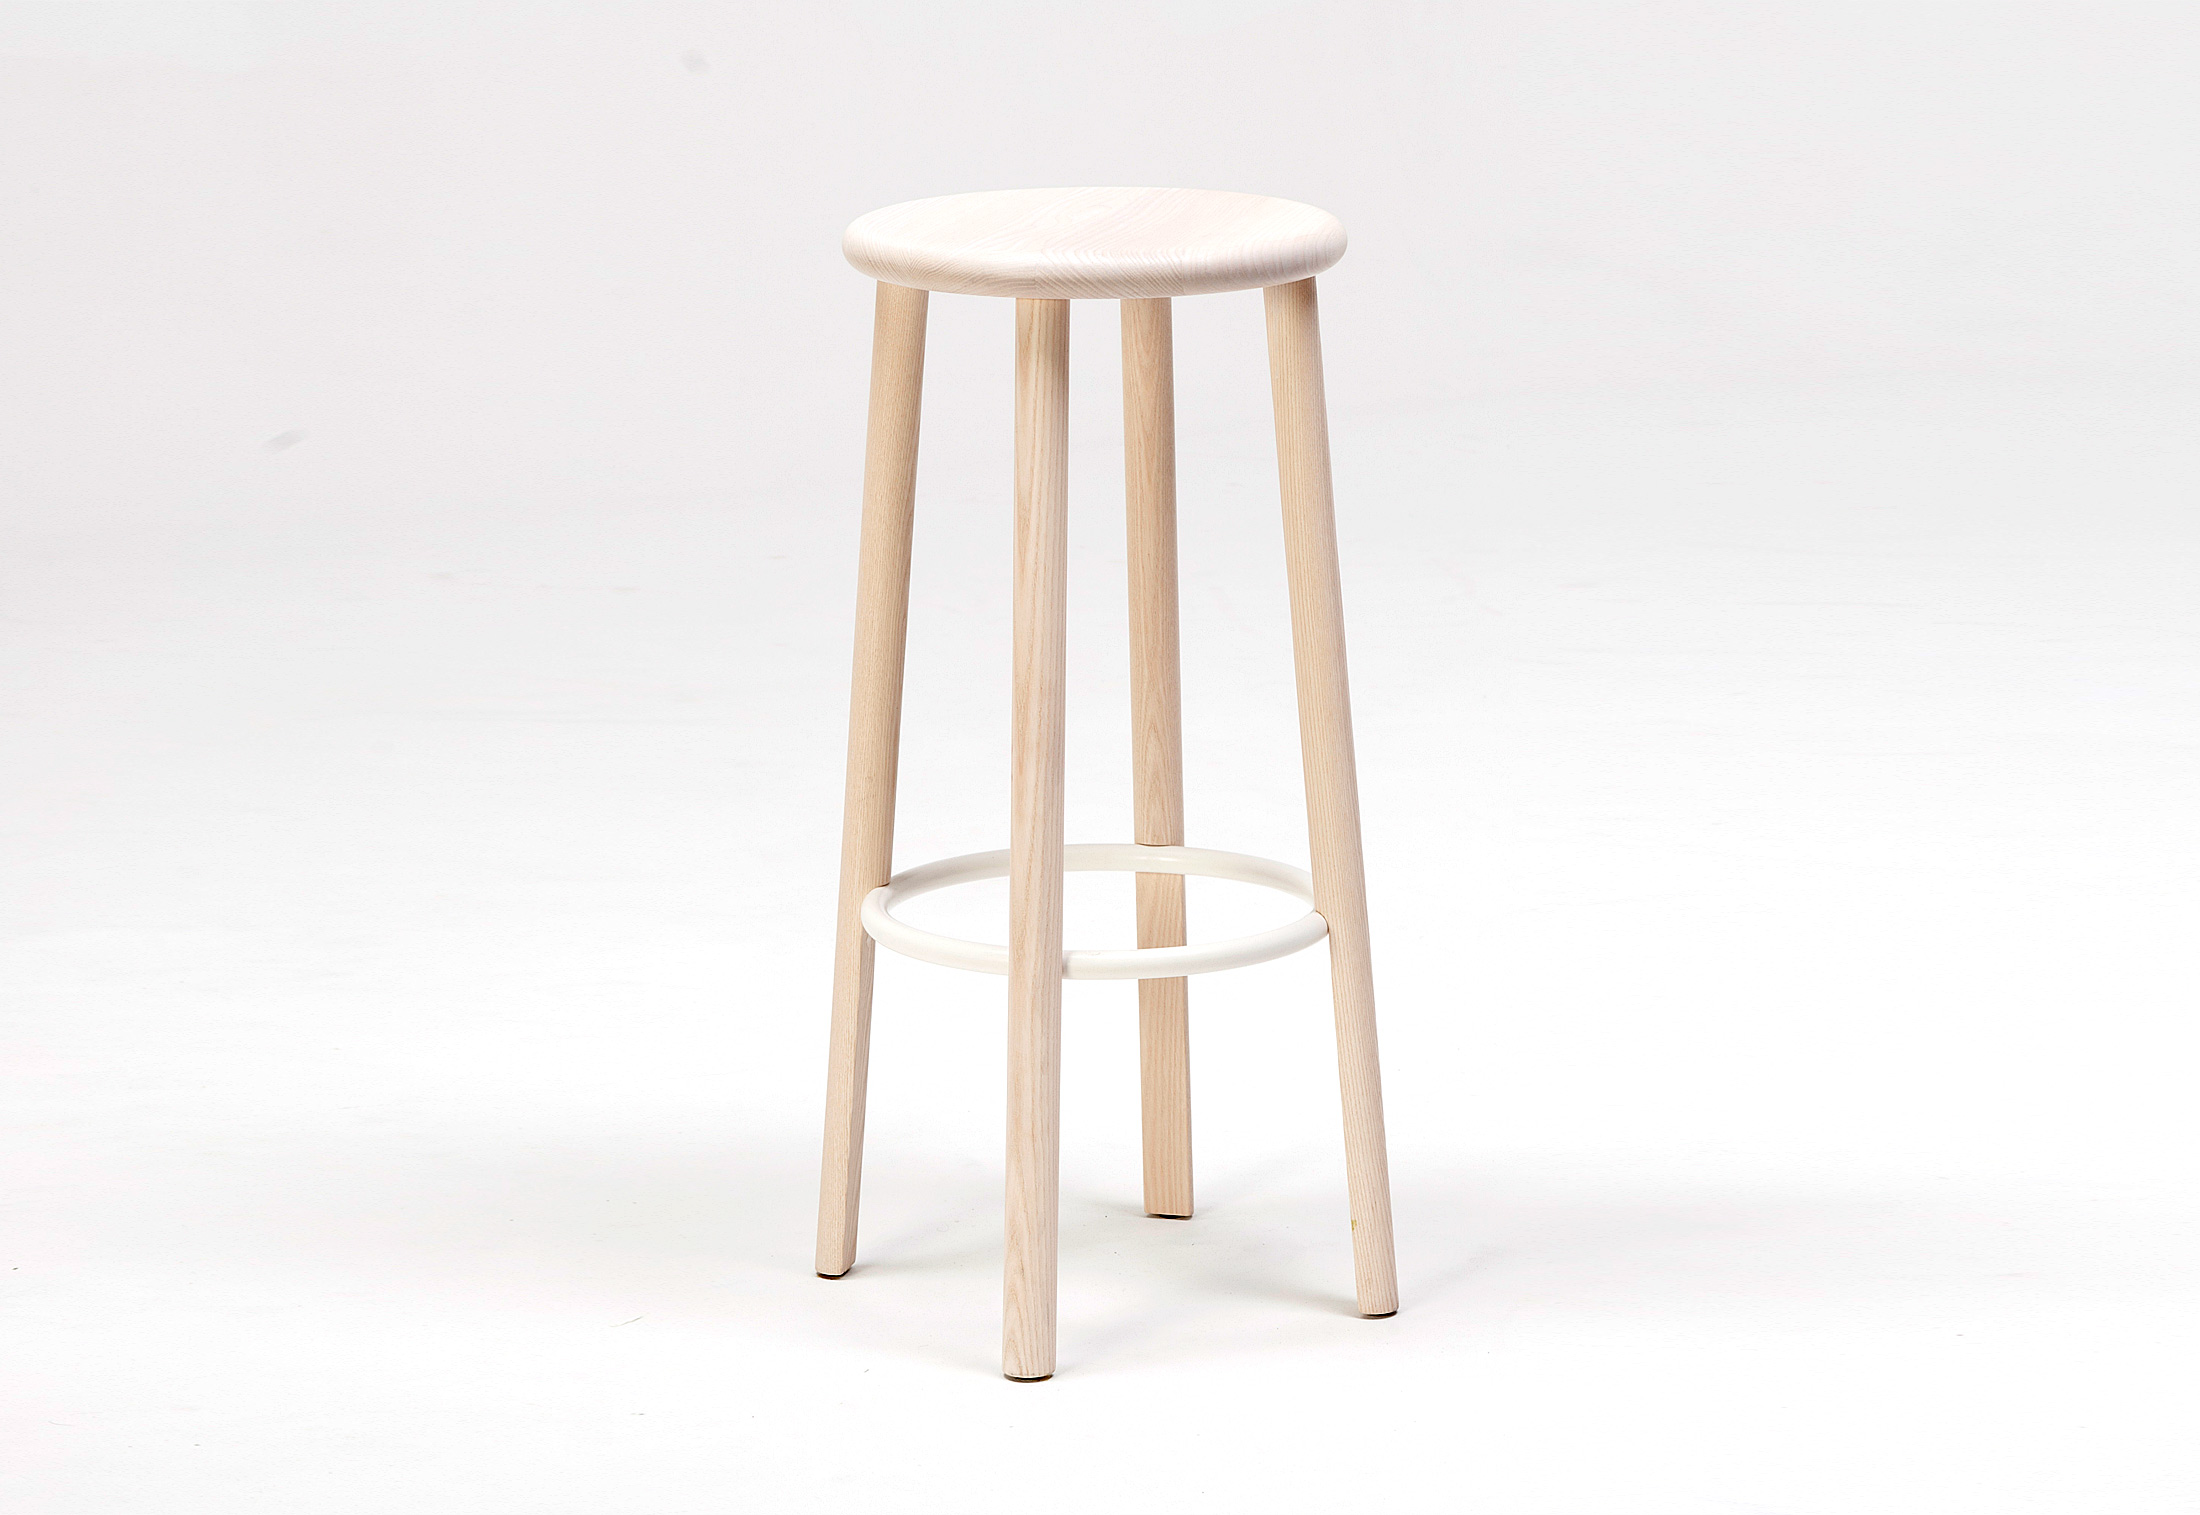 Solo bar stool by Mattiazzi STYLEPARK : solo bar stool 4 from www.stylepark.com size 2200 x 1515 jpeg 434kB